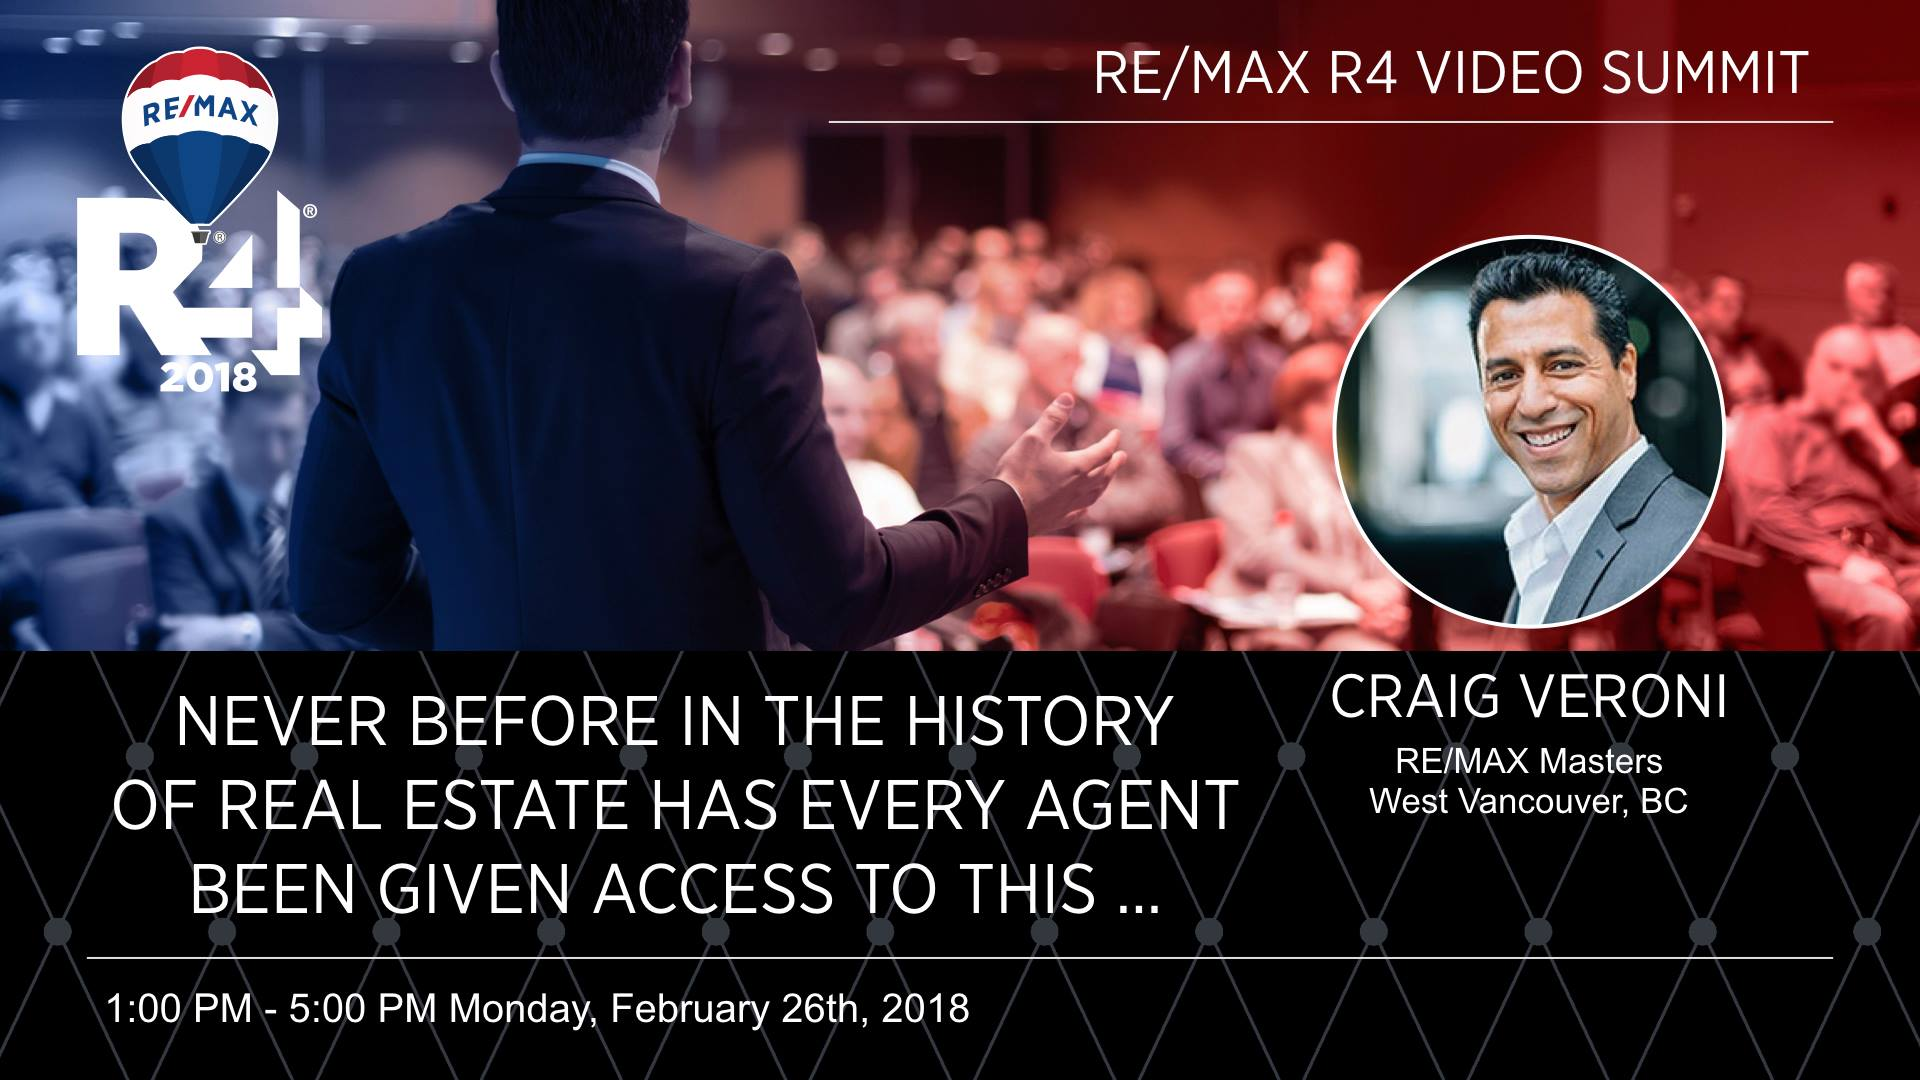 Craig Veroni RE/MAX R4 Summit - Vegas 2018